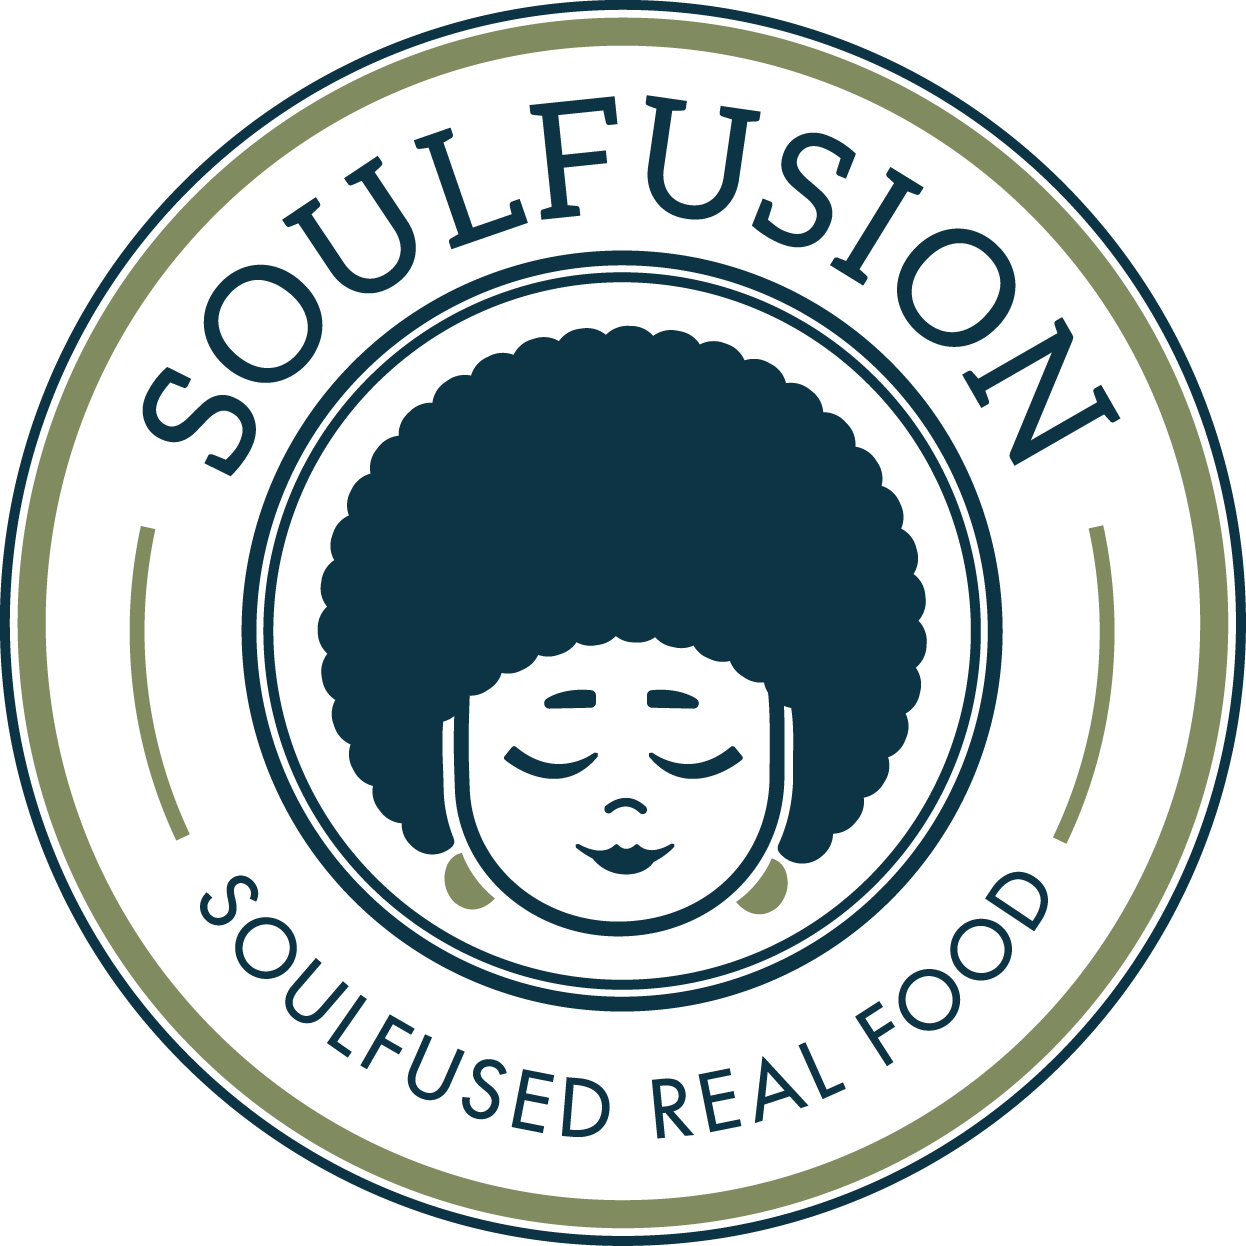 SoulFusion.CO